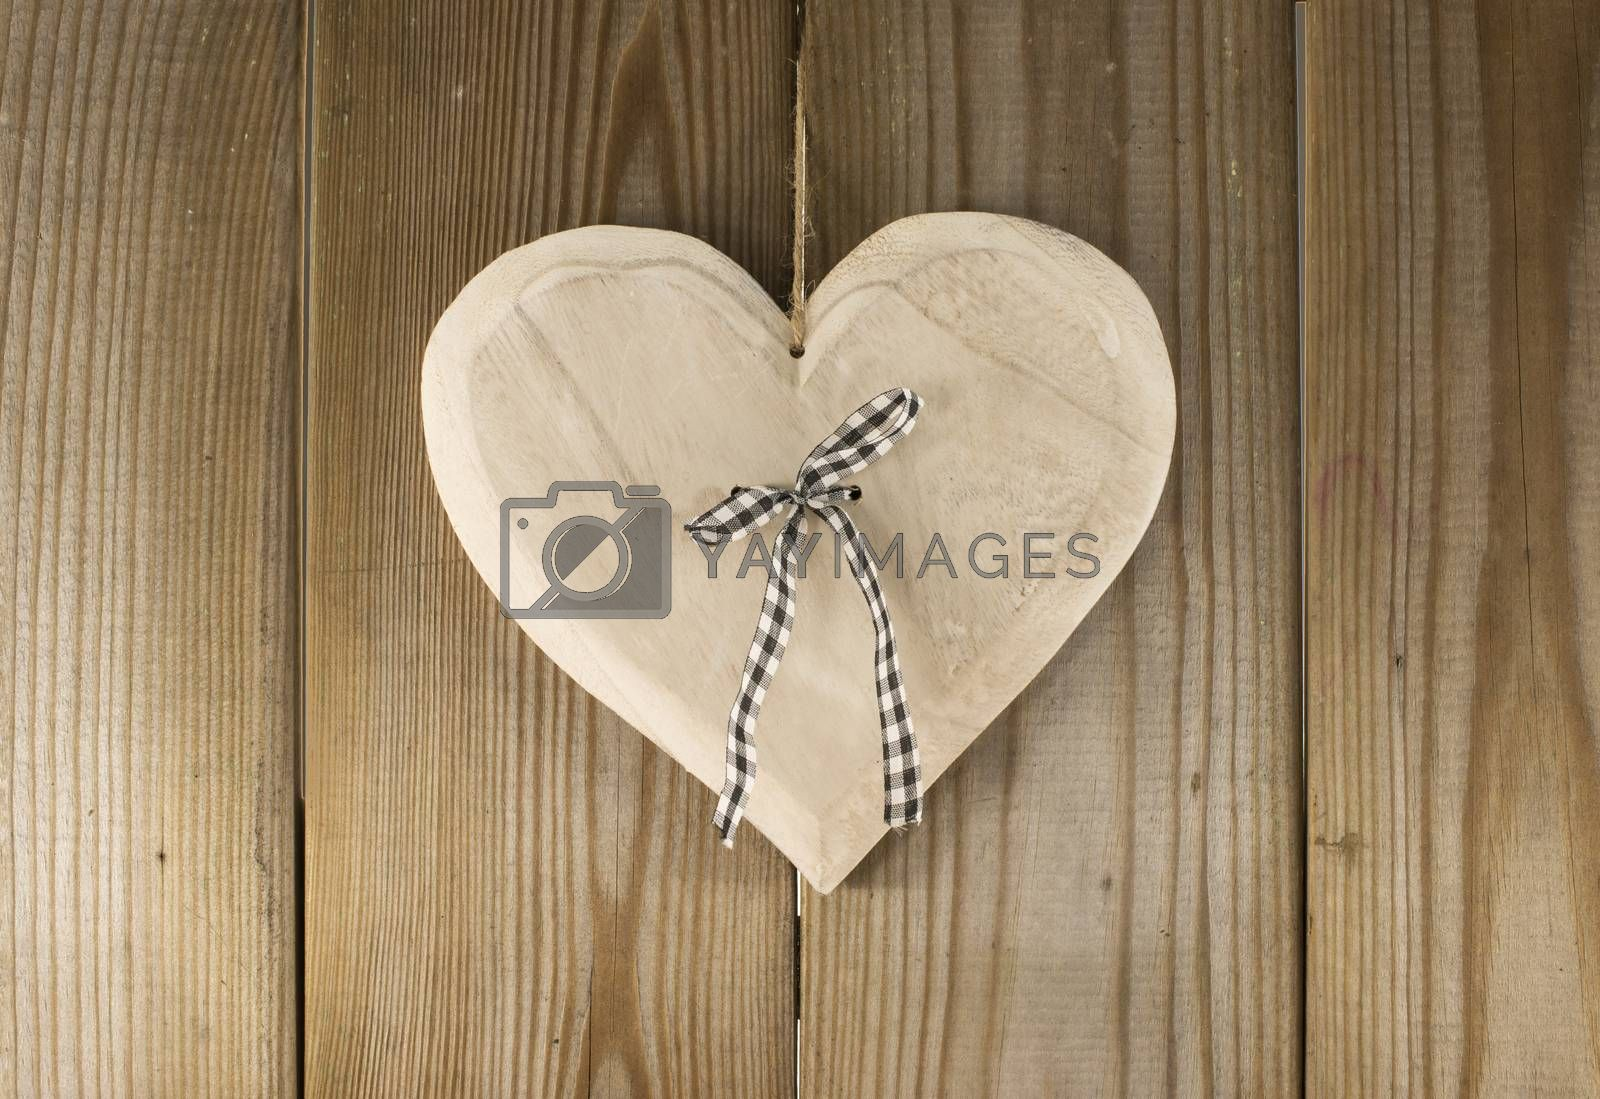 Royalty free image of hanging valentines heart by compuinfoto